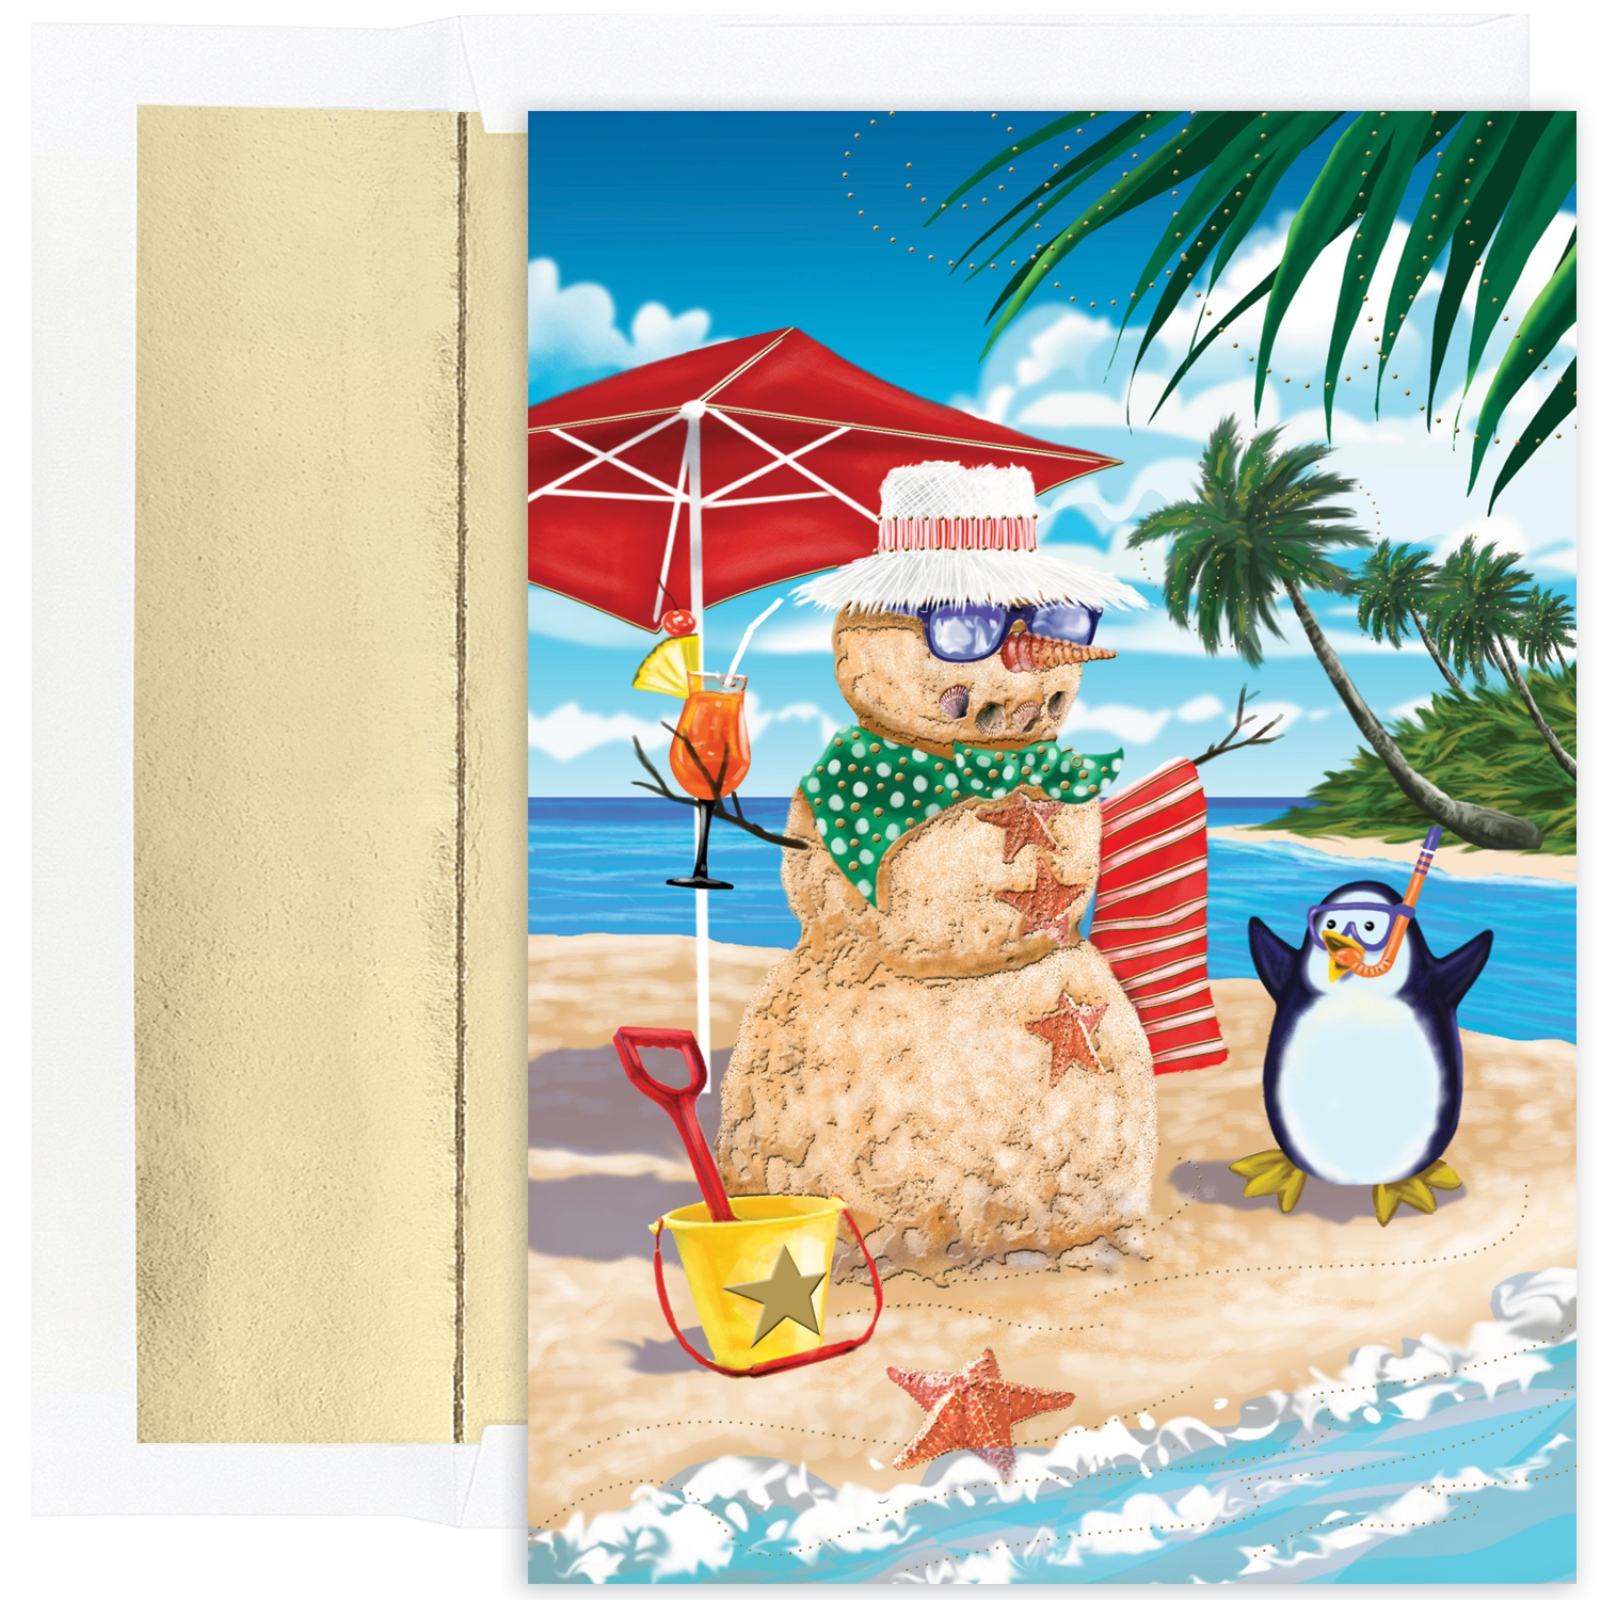 Beachy Sand Snowman Celebrating with Beach Penguin 18 Boxed Christmas Cards